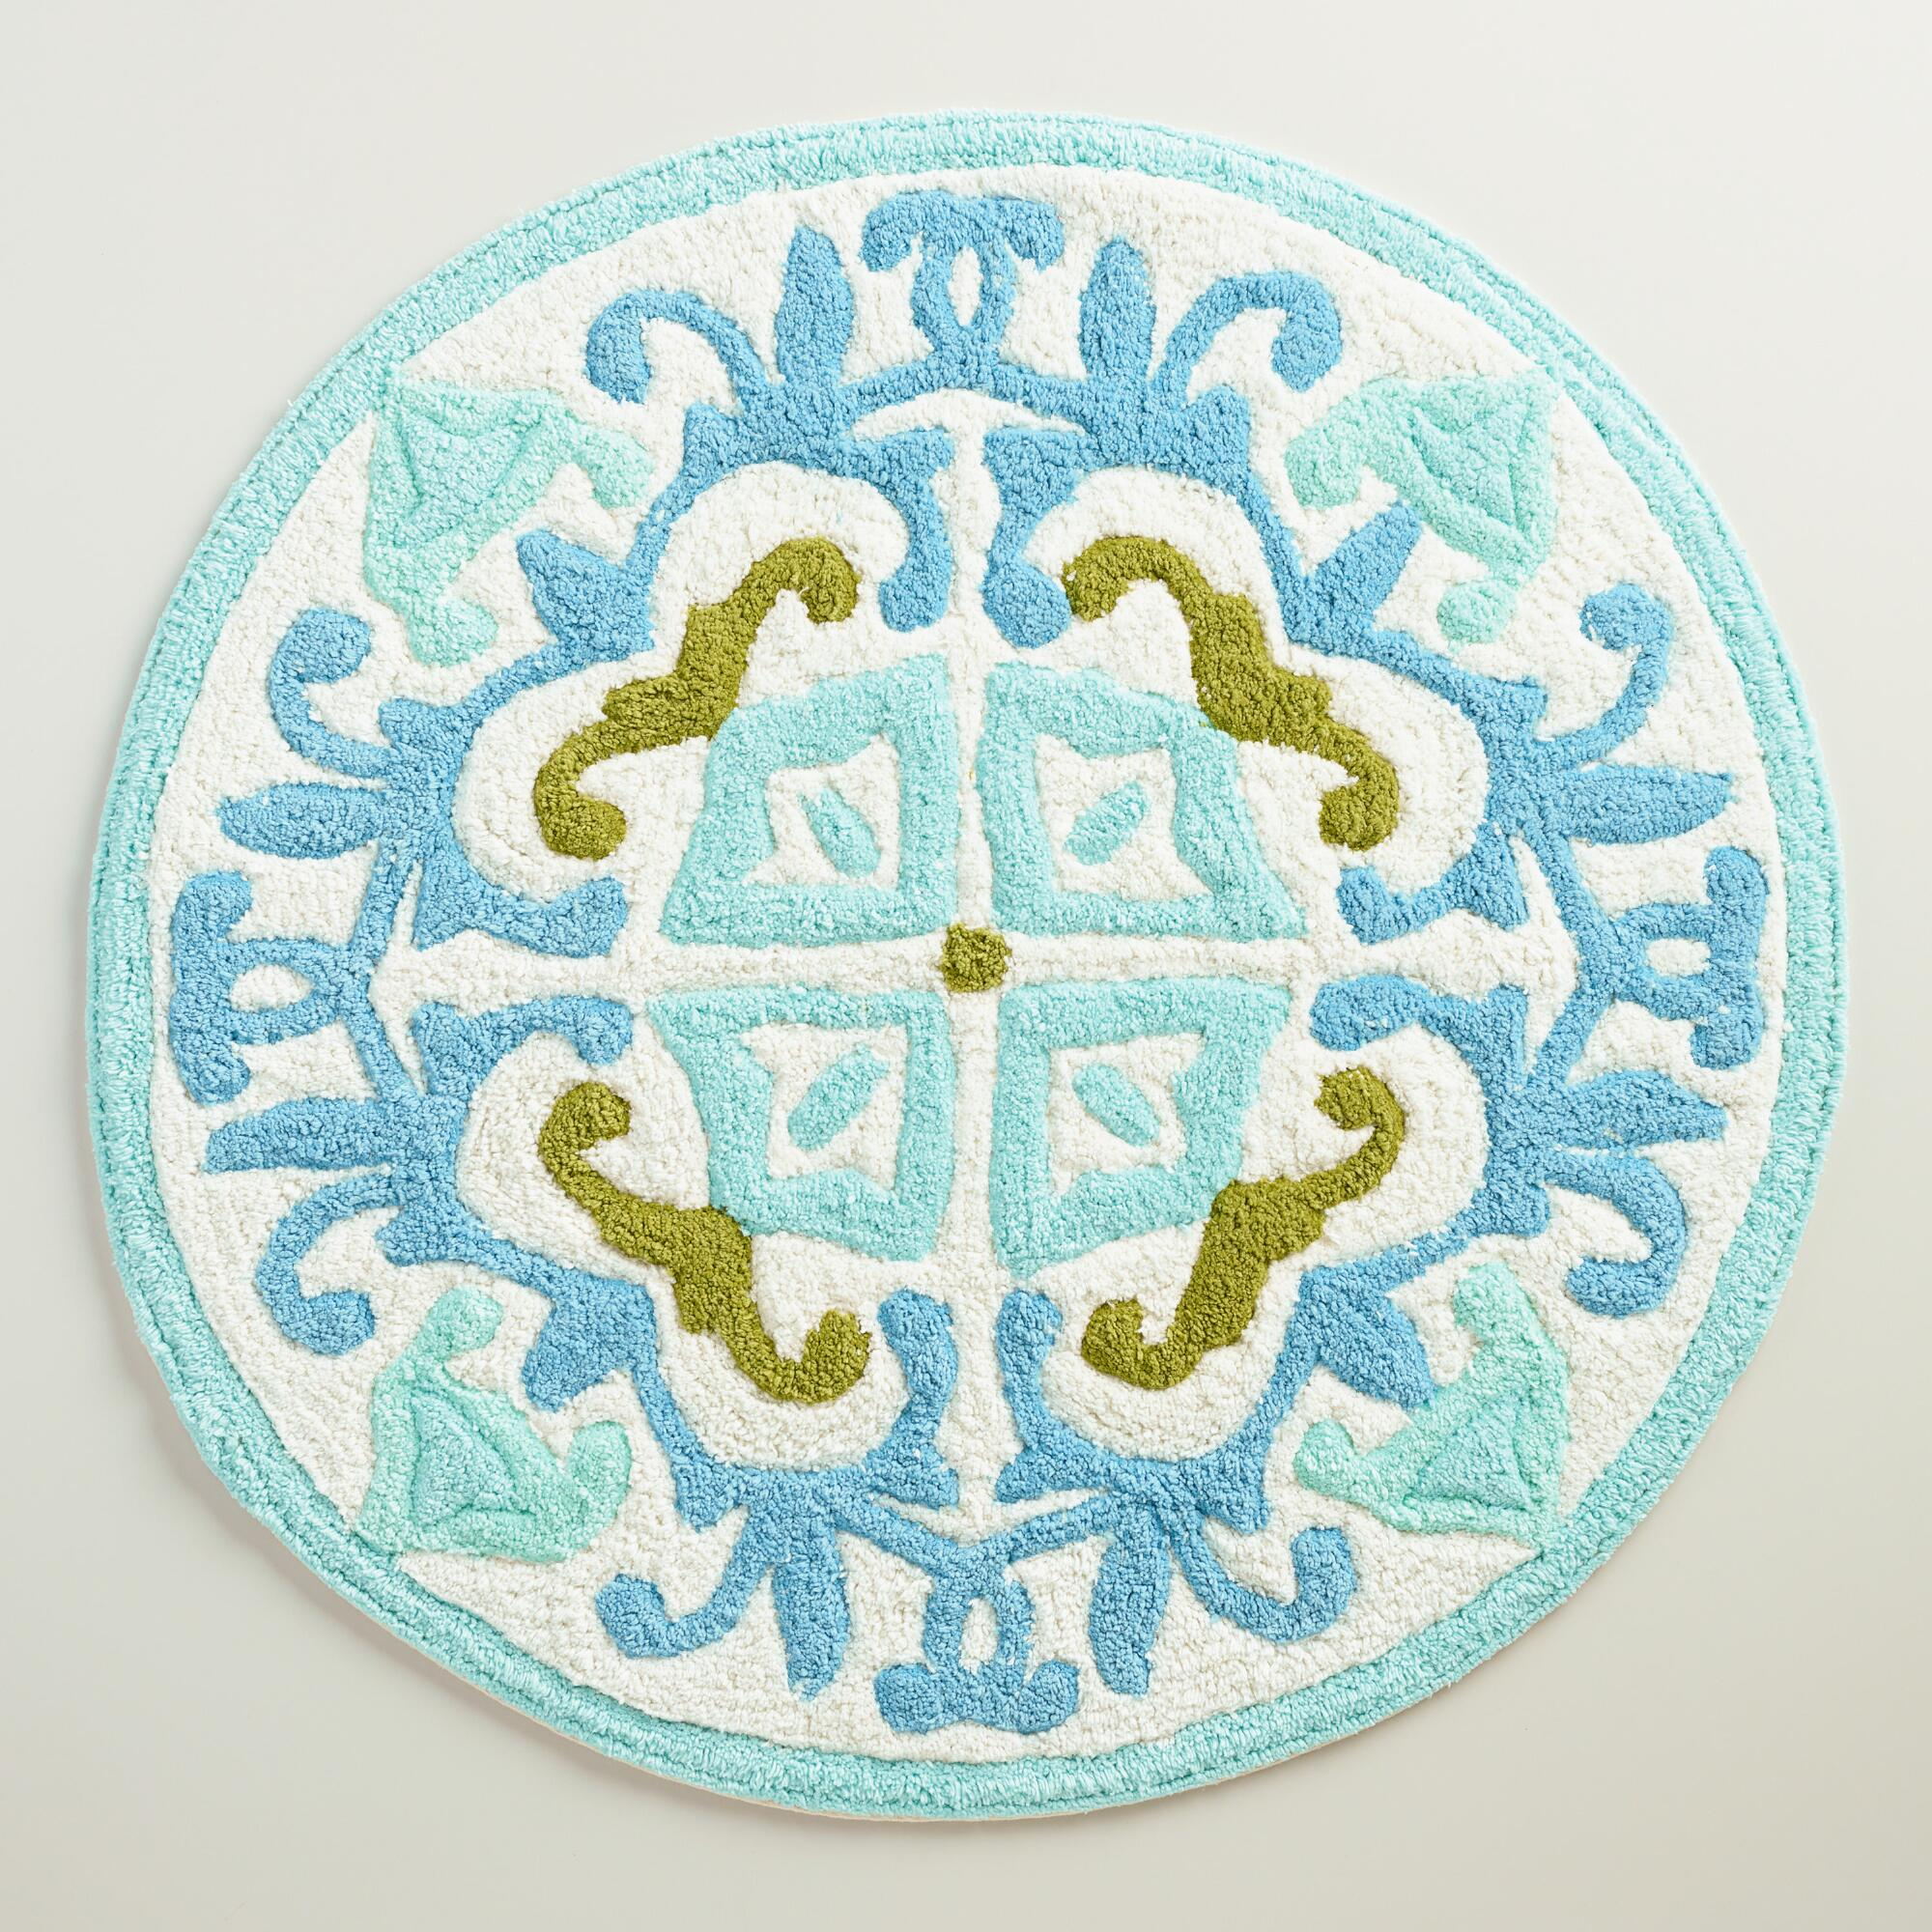 Round Bathroom Rugs For Sale - Collection Bathroom Rugs On Sale Photos, - Lighting